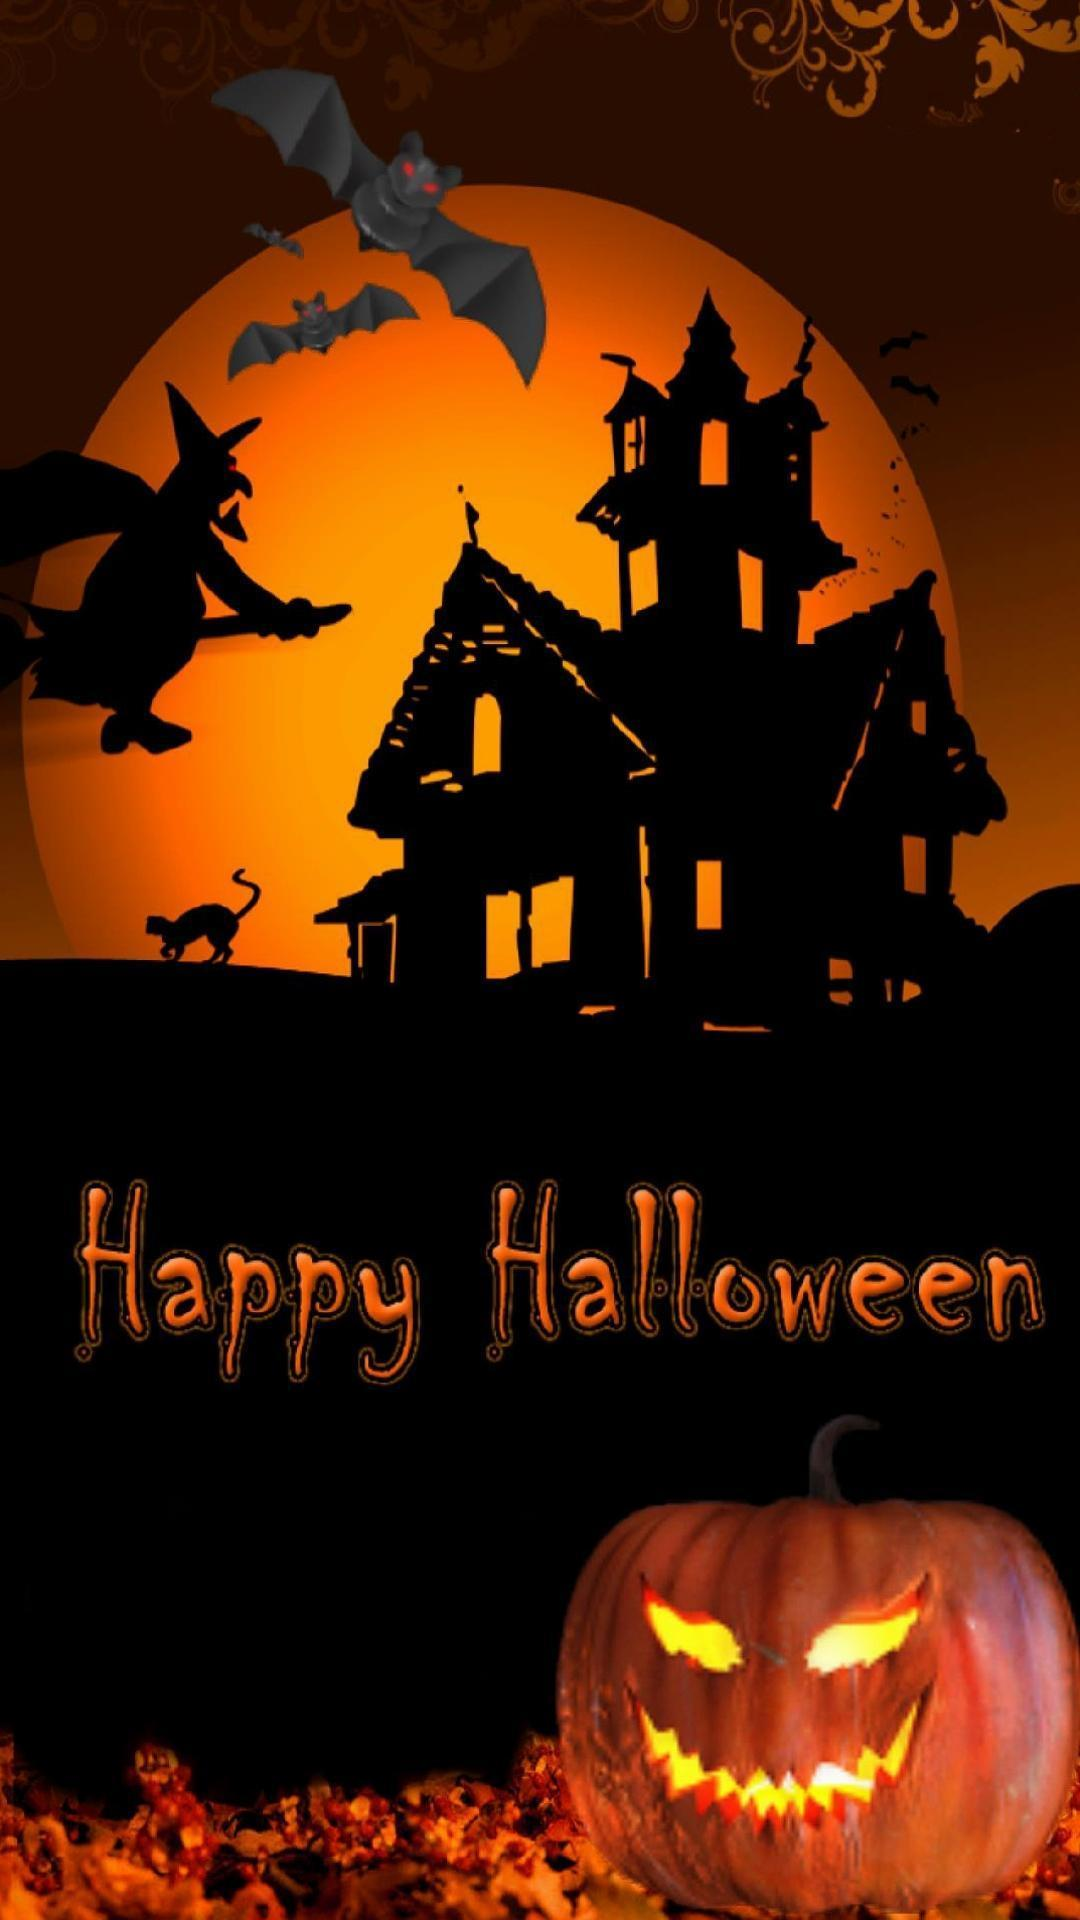 Halloween Wallpaper Hd Free 2017 For Android Apk Download